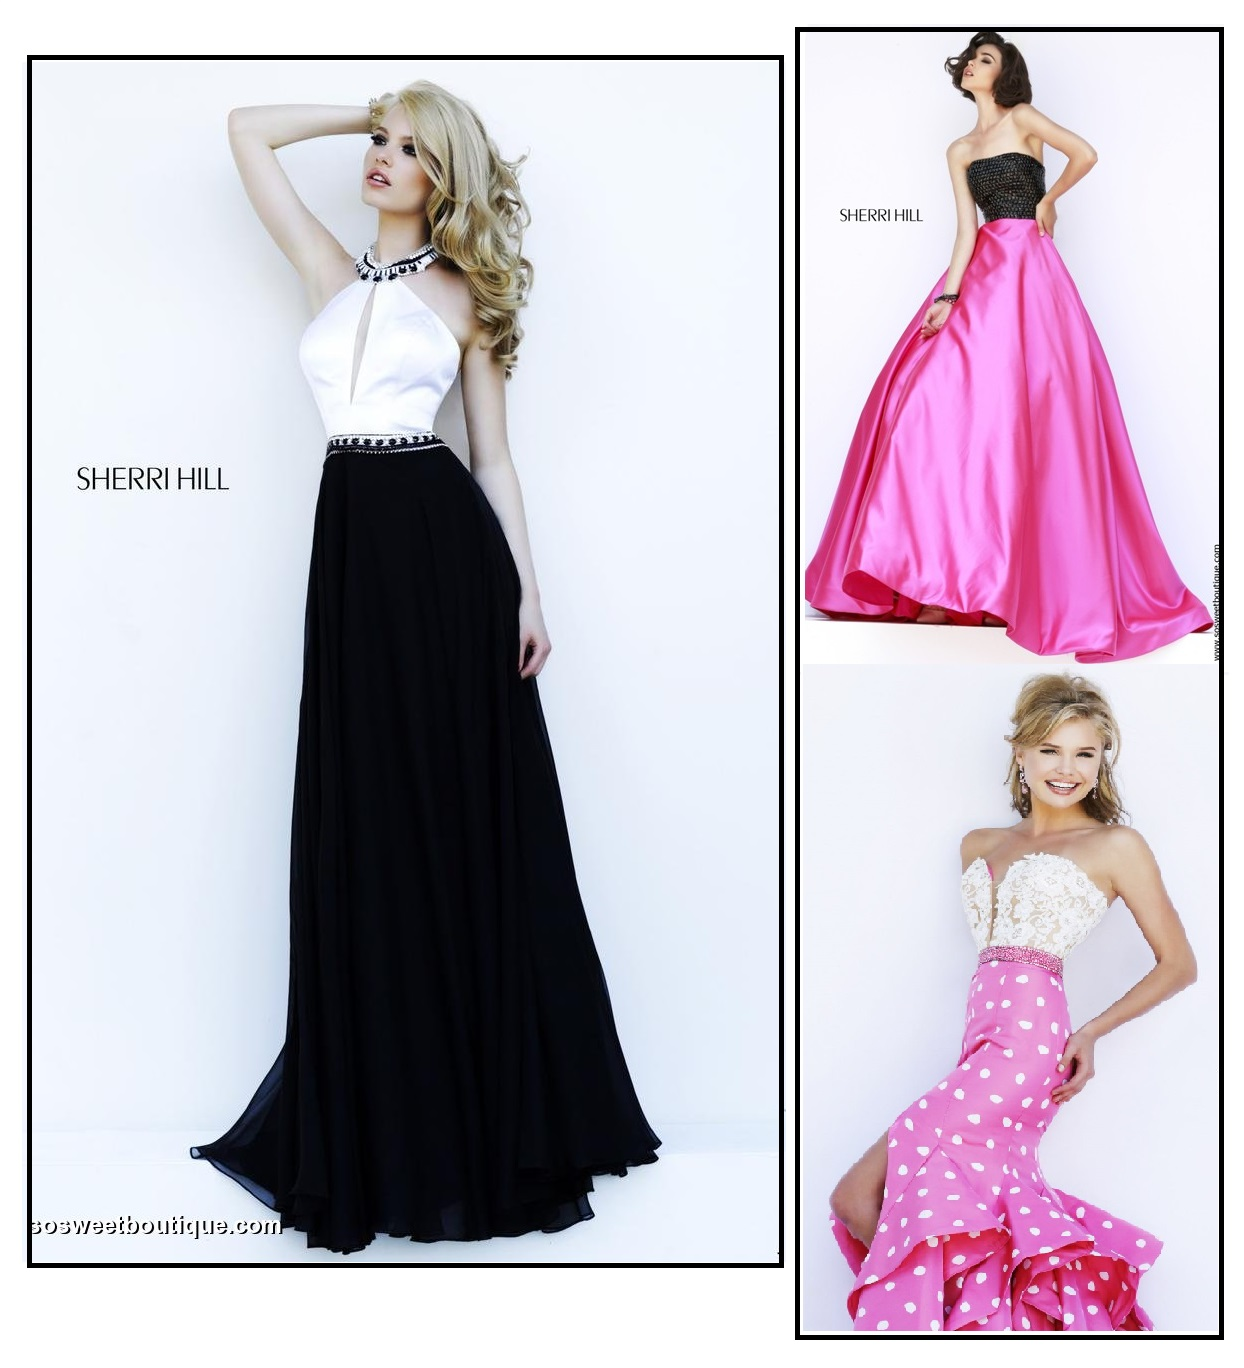 Prom Dress Ideas- Sherri Hill